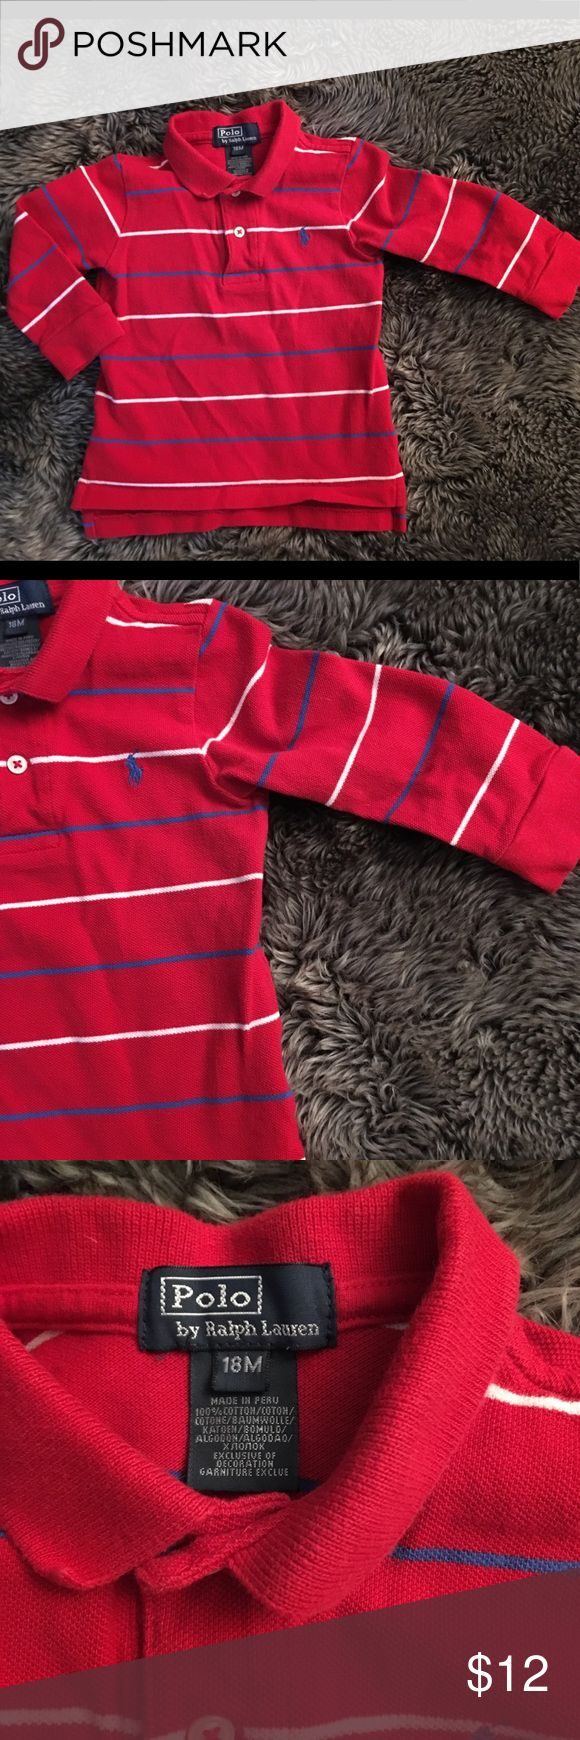 Polo Ralph Lauren boys long sleeve polo shirt 18mo Polo Ralph Lauren boys long sleeve polo shirt 18mo. Red in color with navy and white stripes. Polo by Ralph Lauren Shirts & Tops Polos